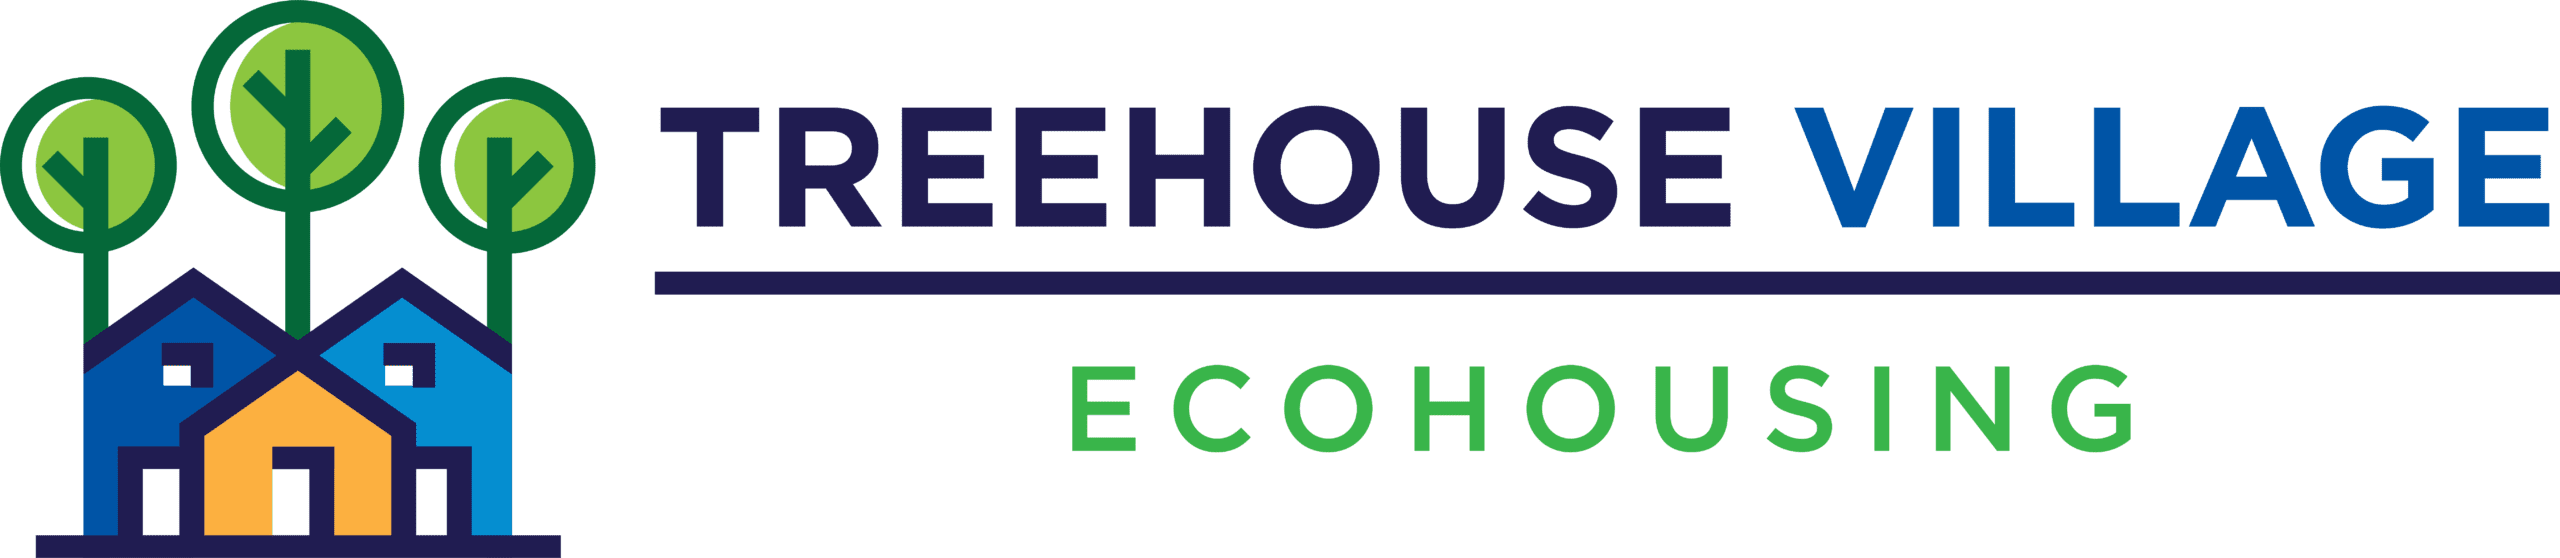 Treehouse Village Ecohousing